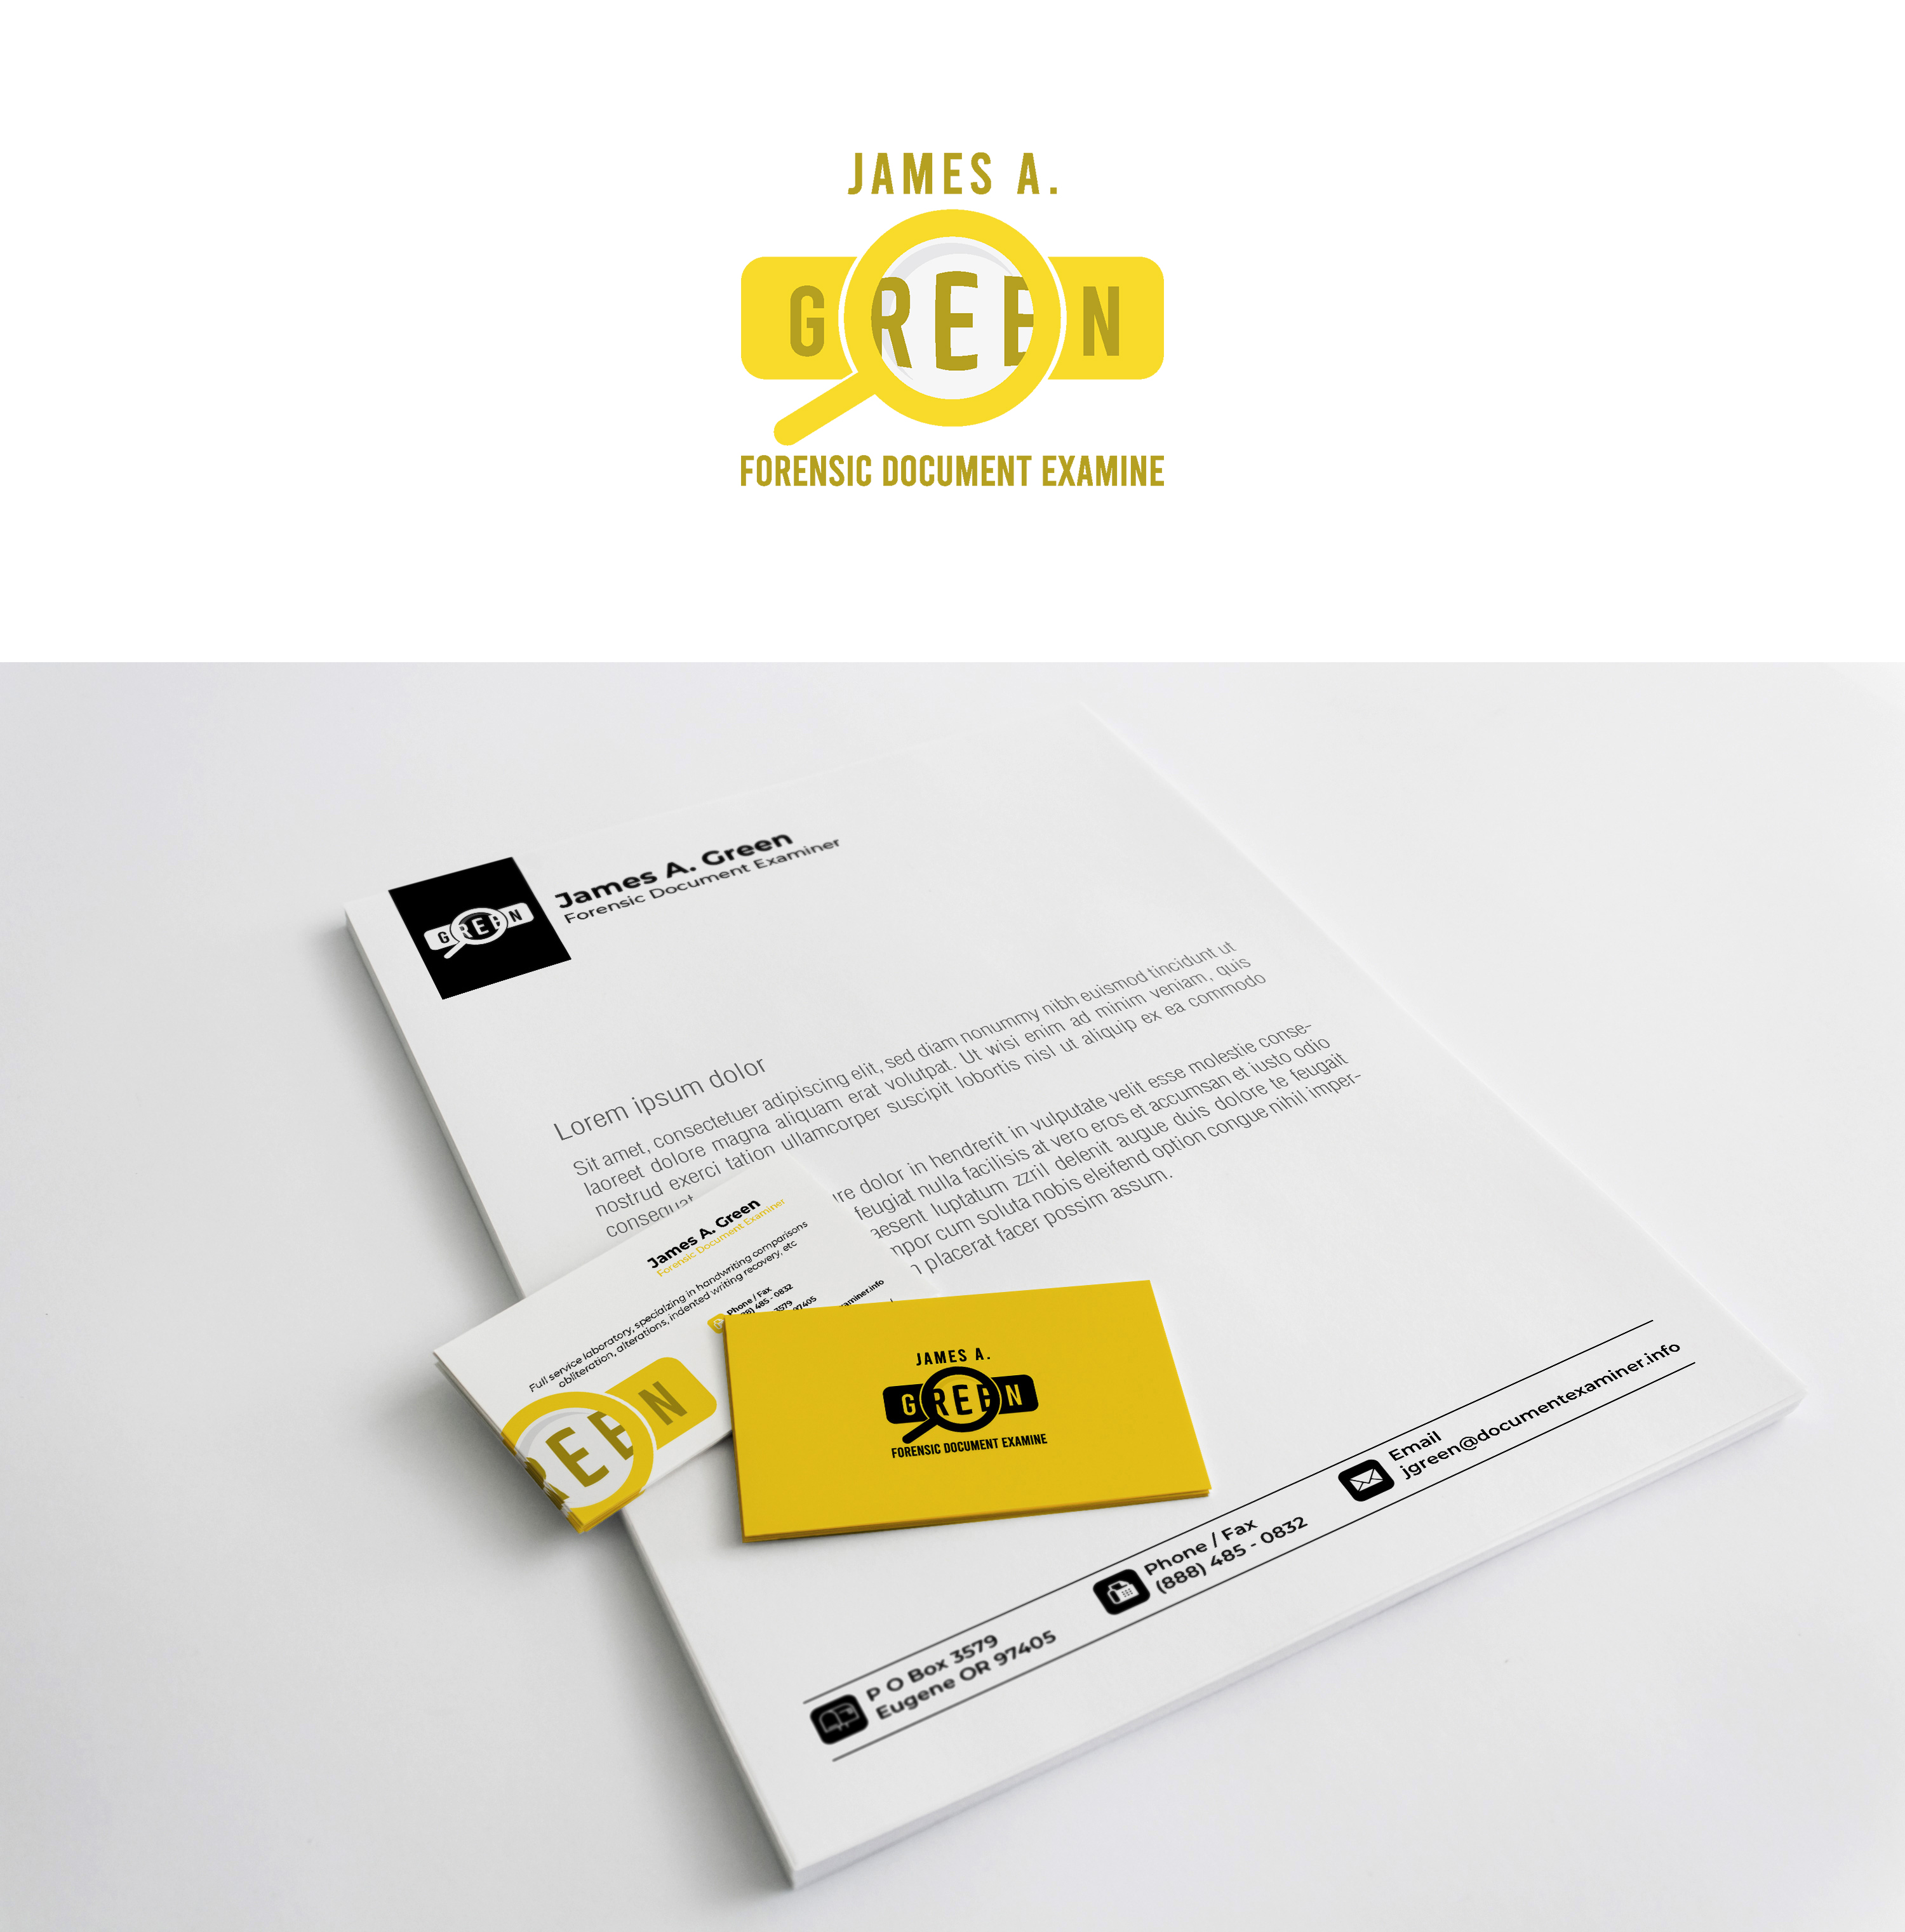 Professional Serious Stationery Design For Forensic Document Examiner By Noor Aldeen Design 22094241